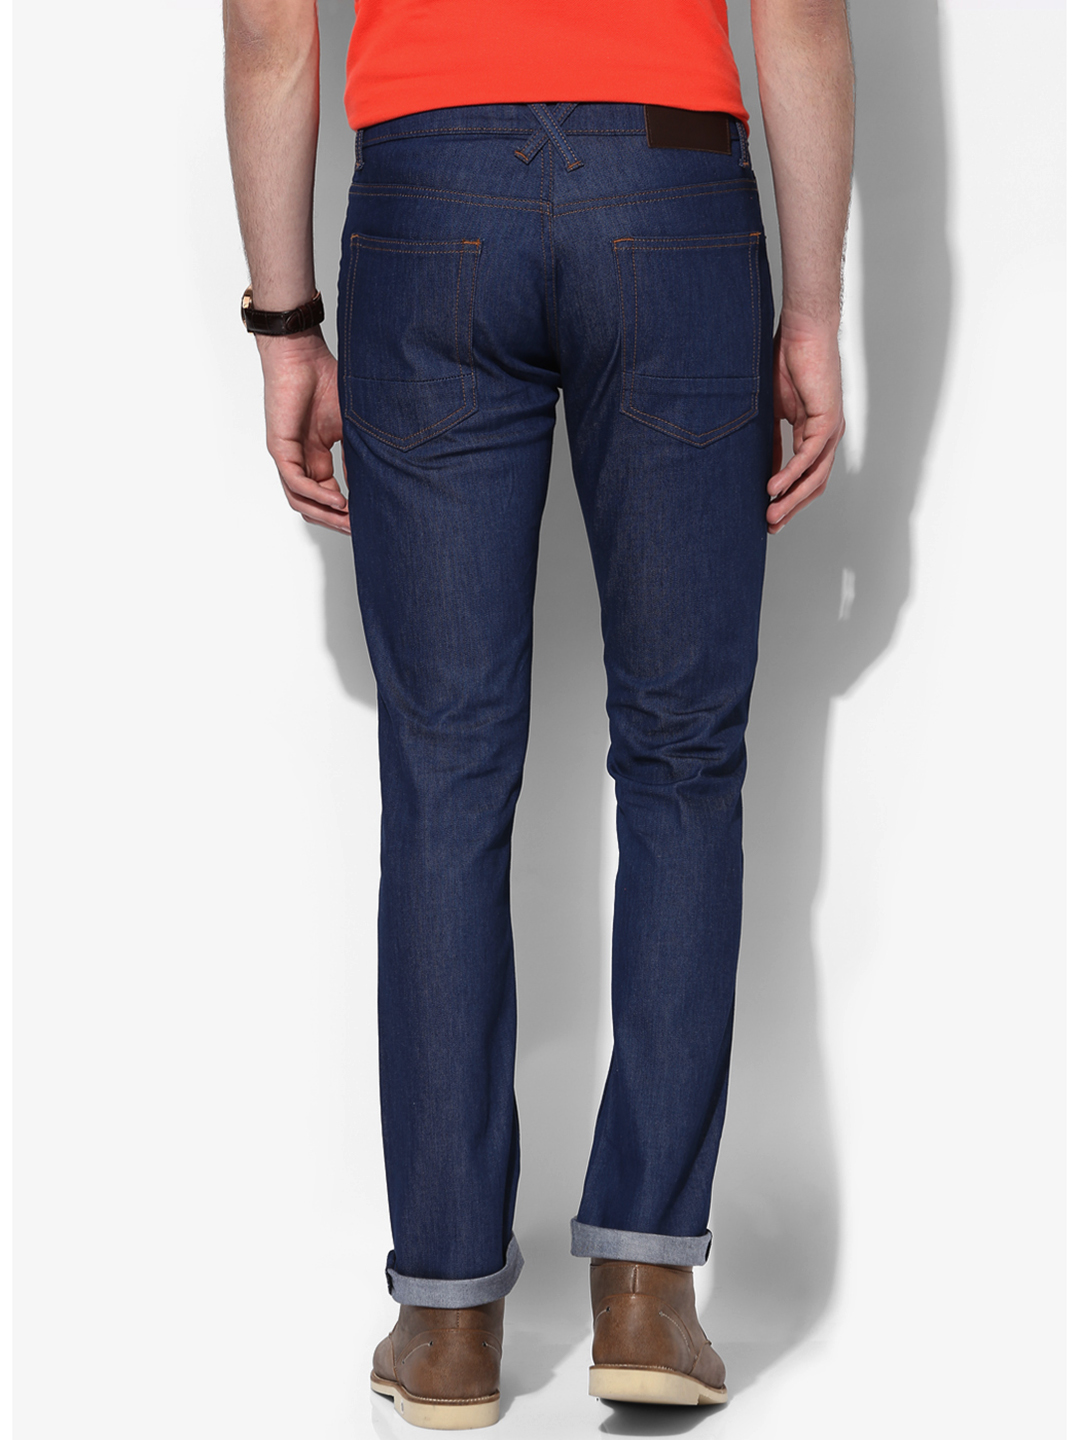 Shopping Long Fitted Denim Plain Basic Jeans online with high-quality and best prices Jeans at Luvyle.